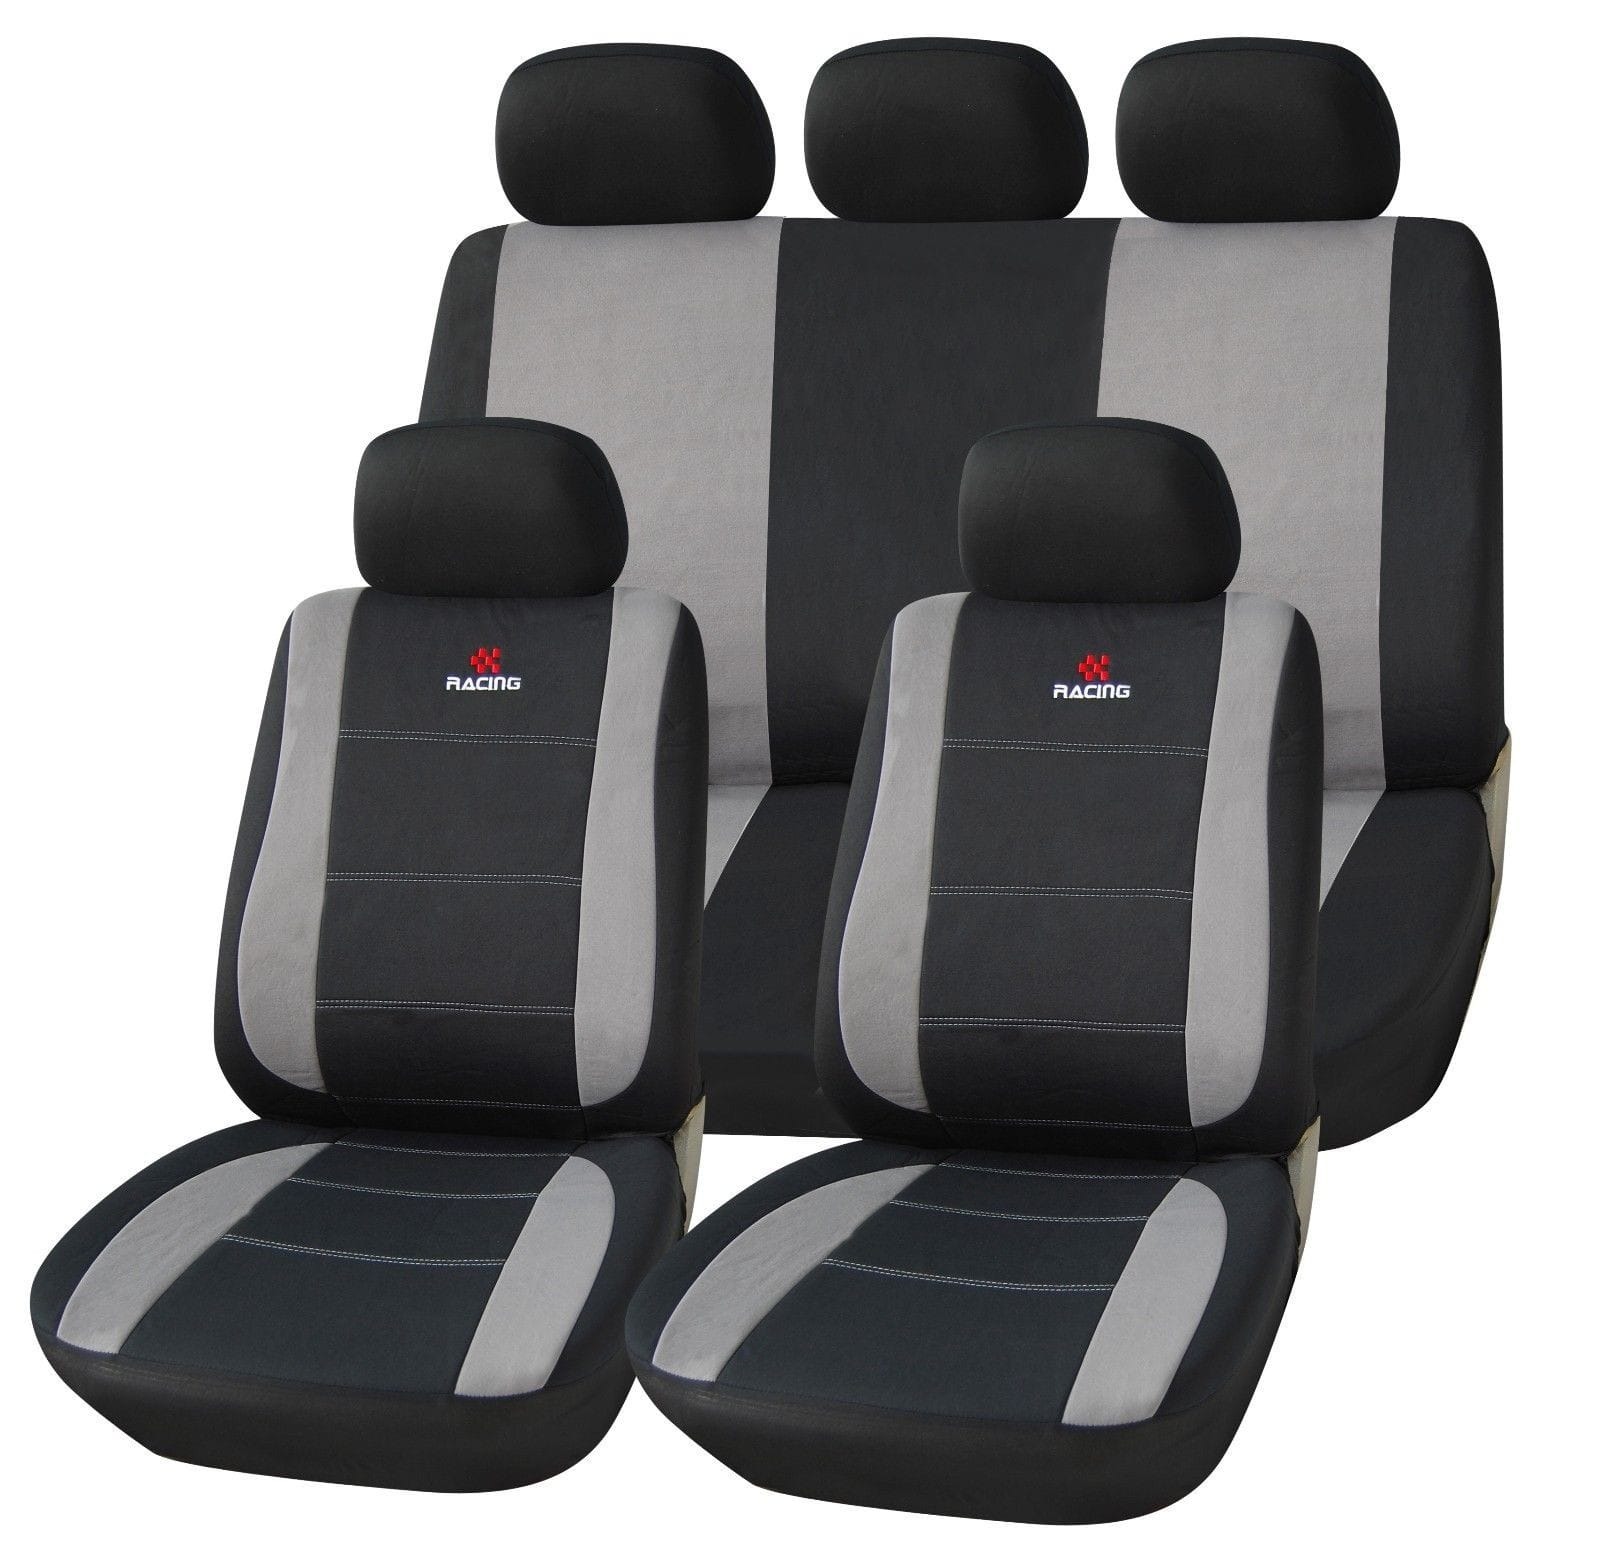 Costway 11 pcs Car Universal Seat Cover $15.95 + Free Shipping